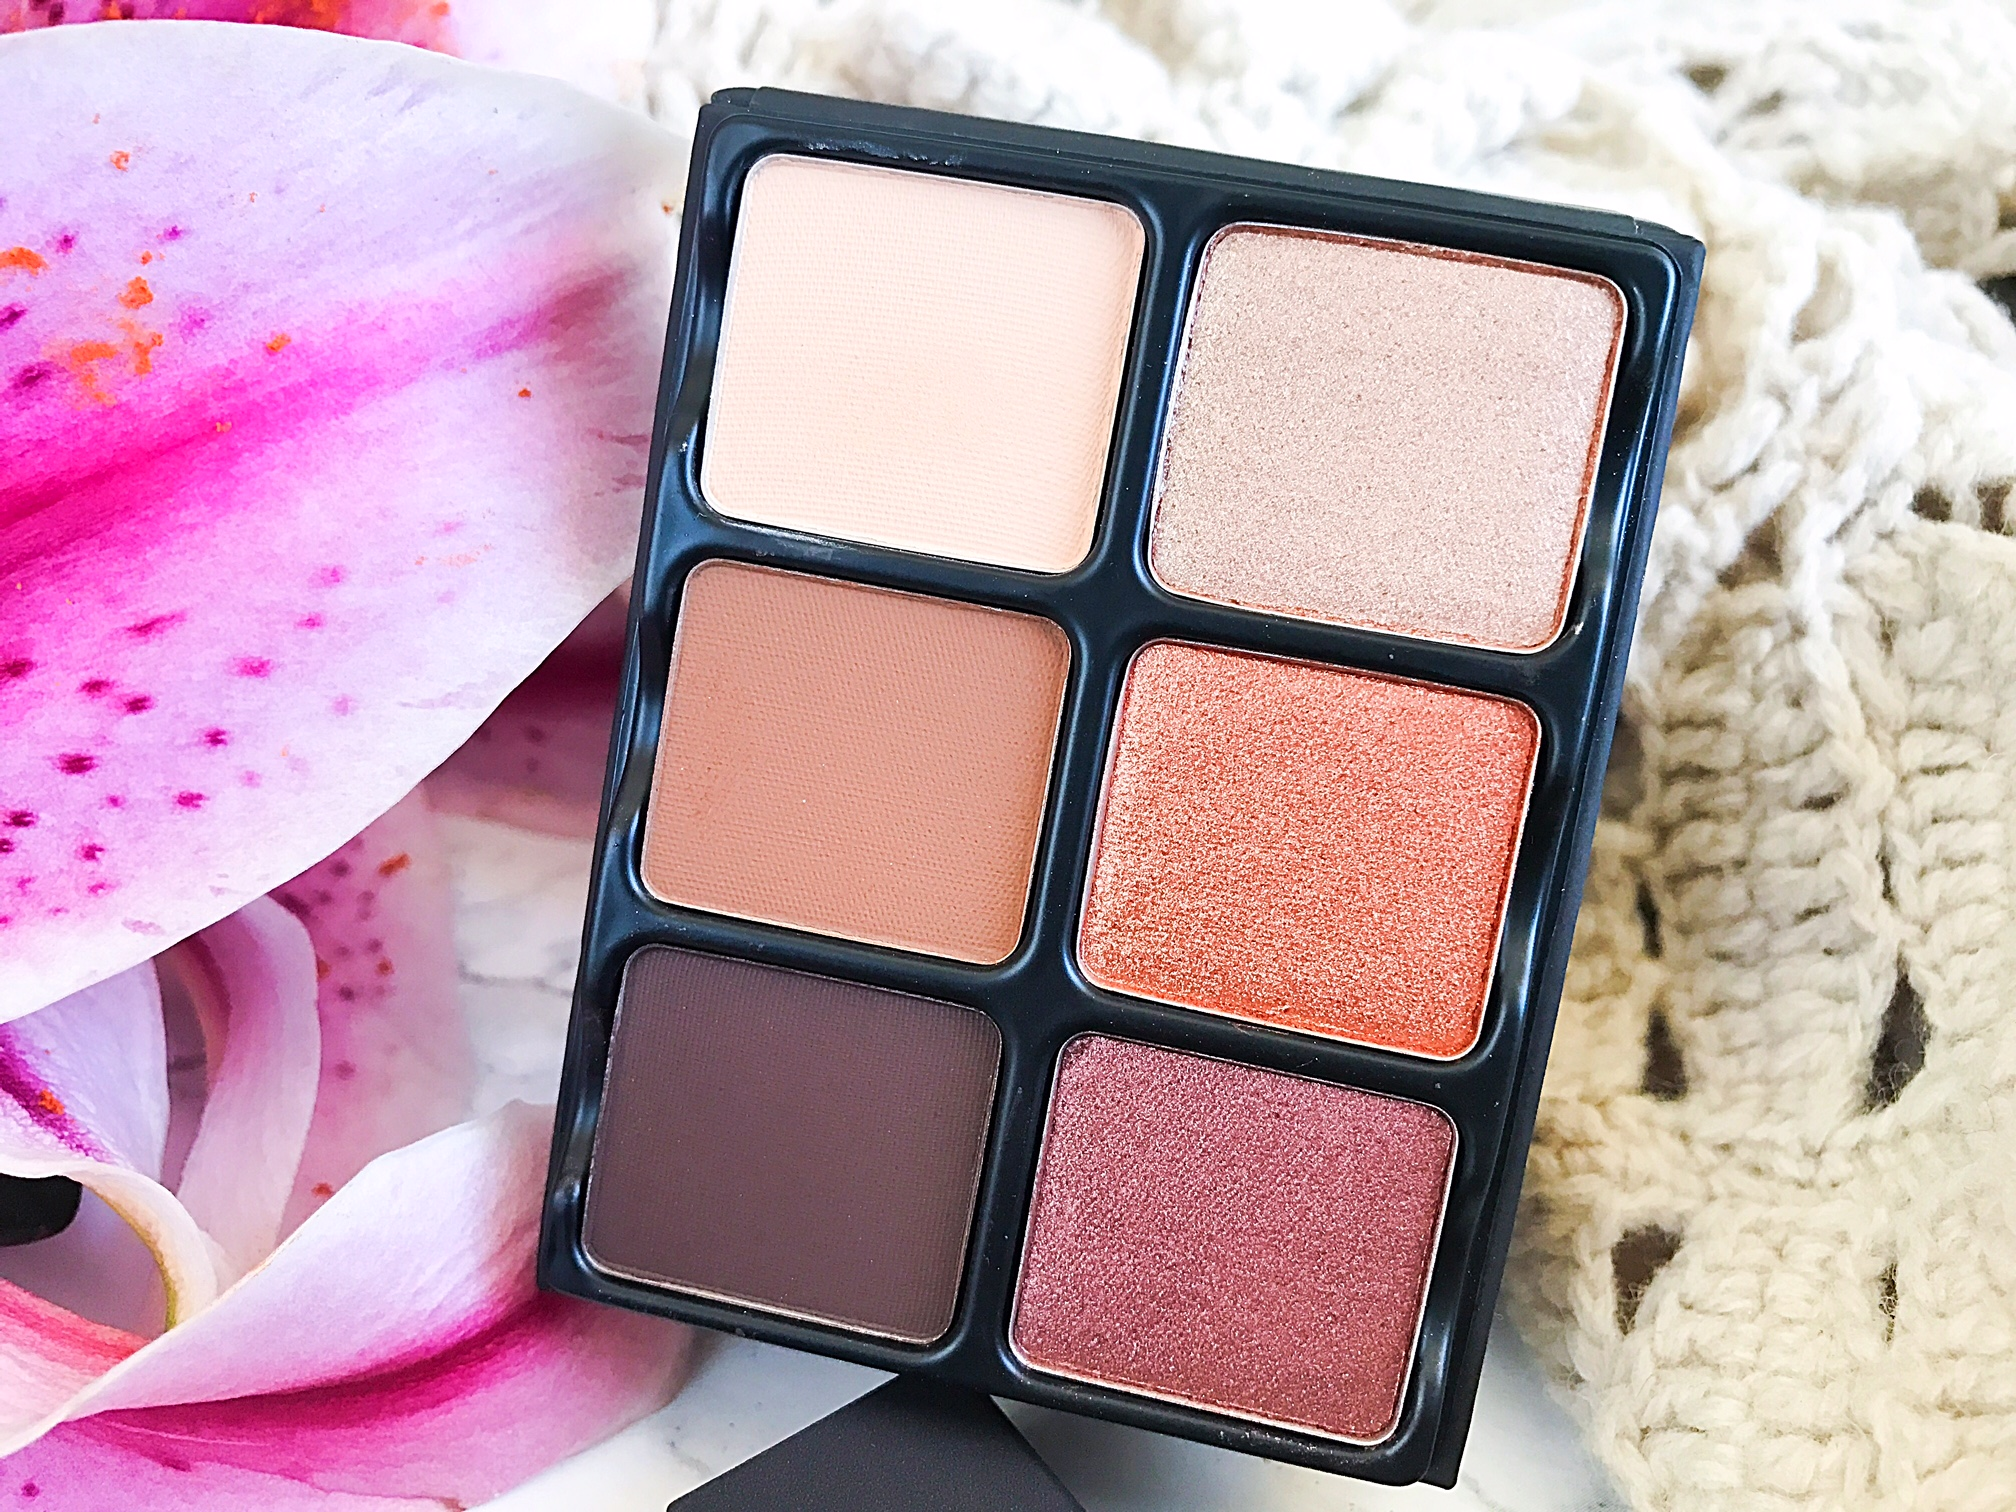 Effortlessly Elegant Makeup With Viseart Theory Ii Minx Palette 06 Paris Nudes The Mattes From Top To Bottom Are